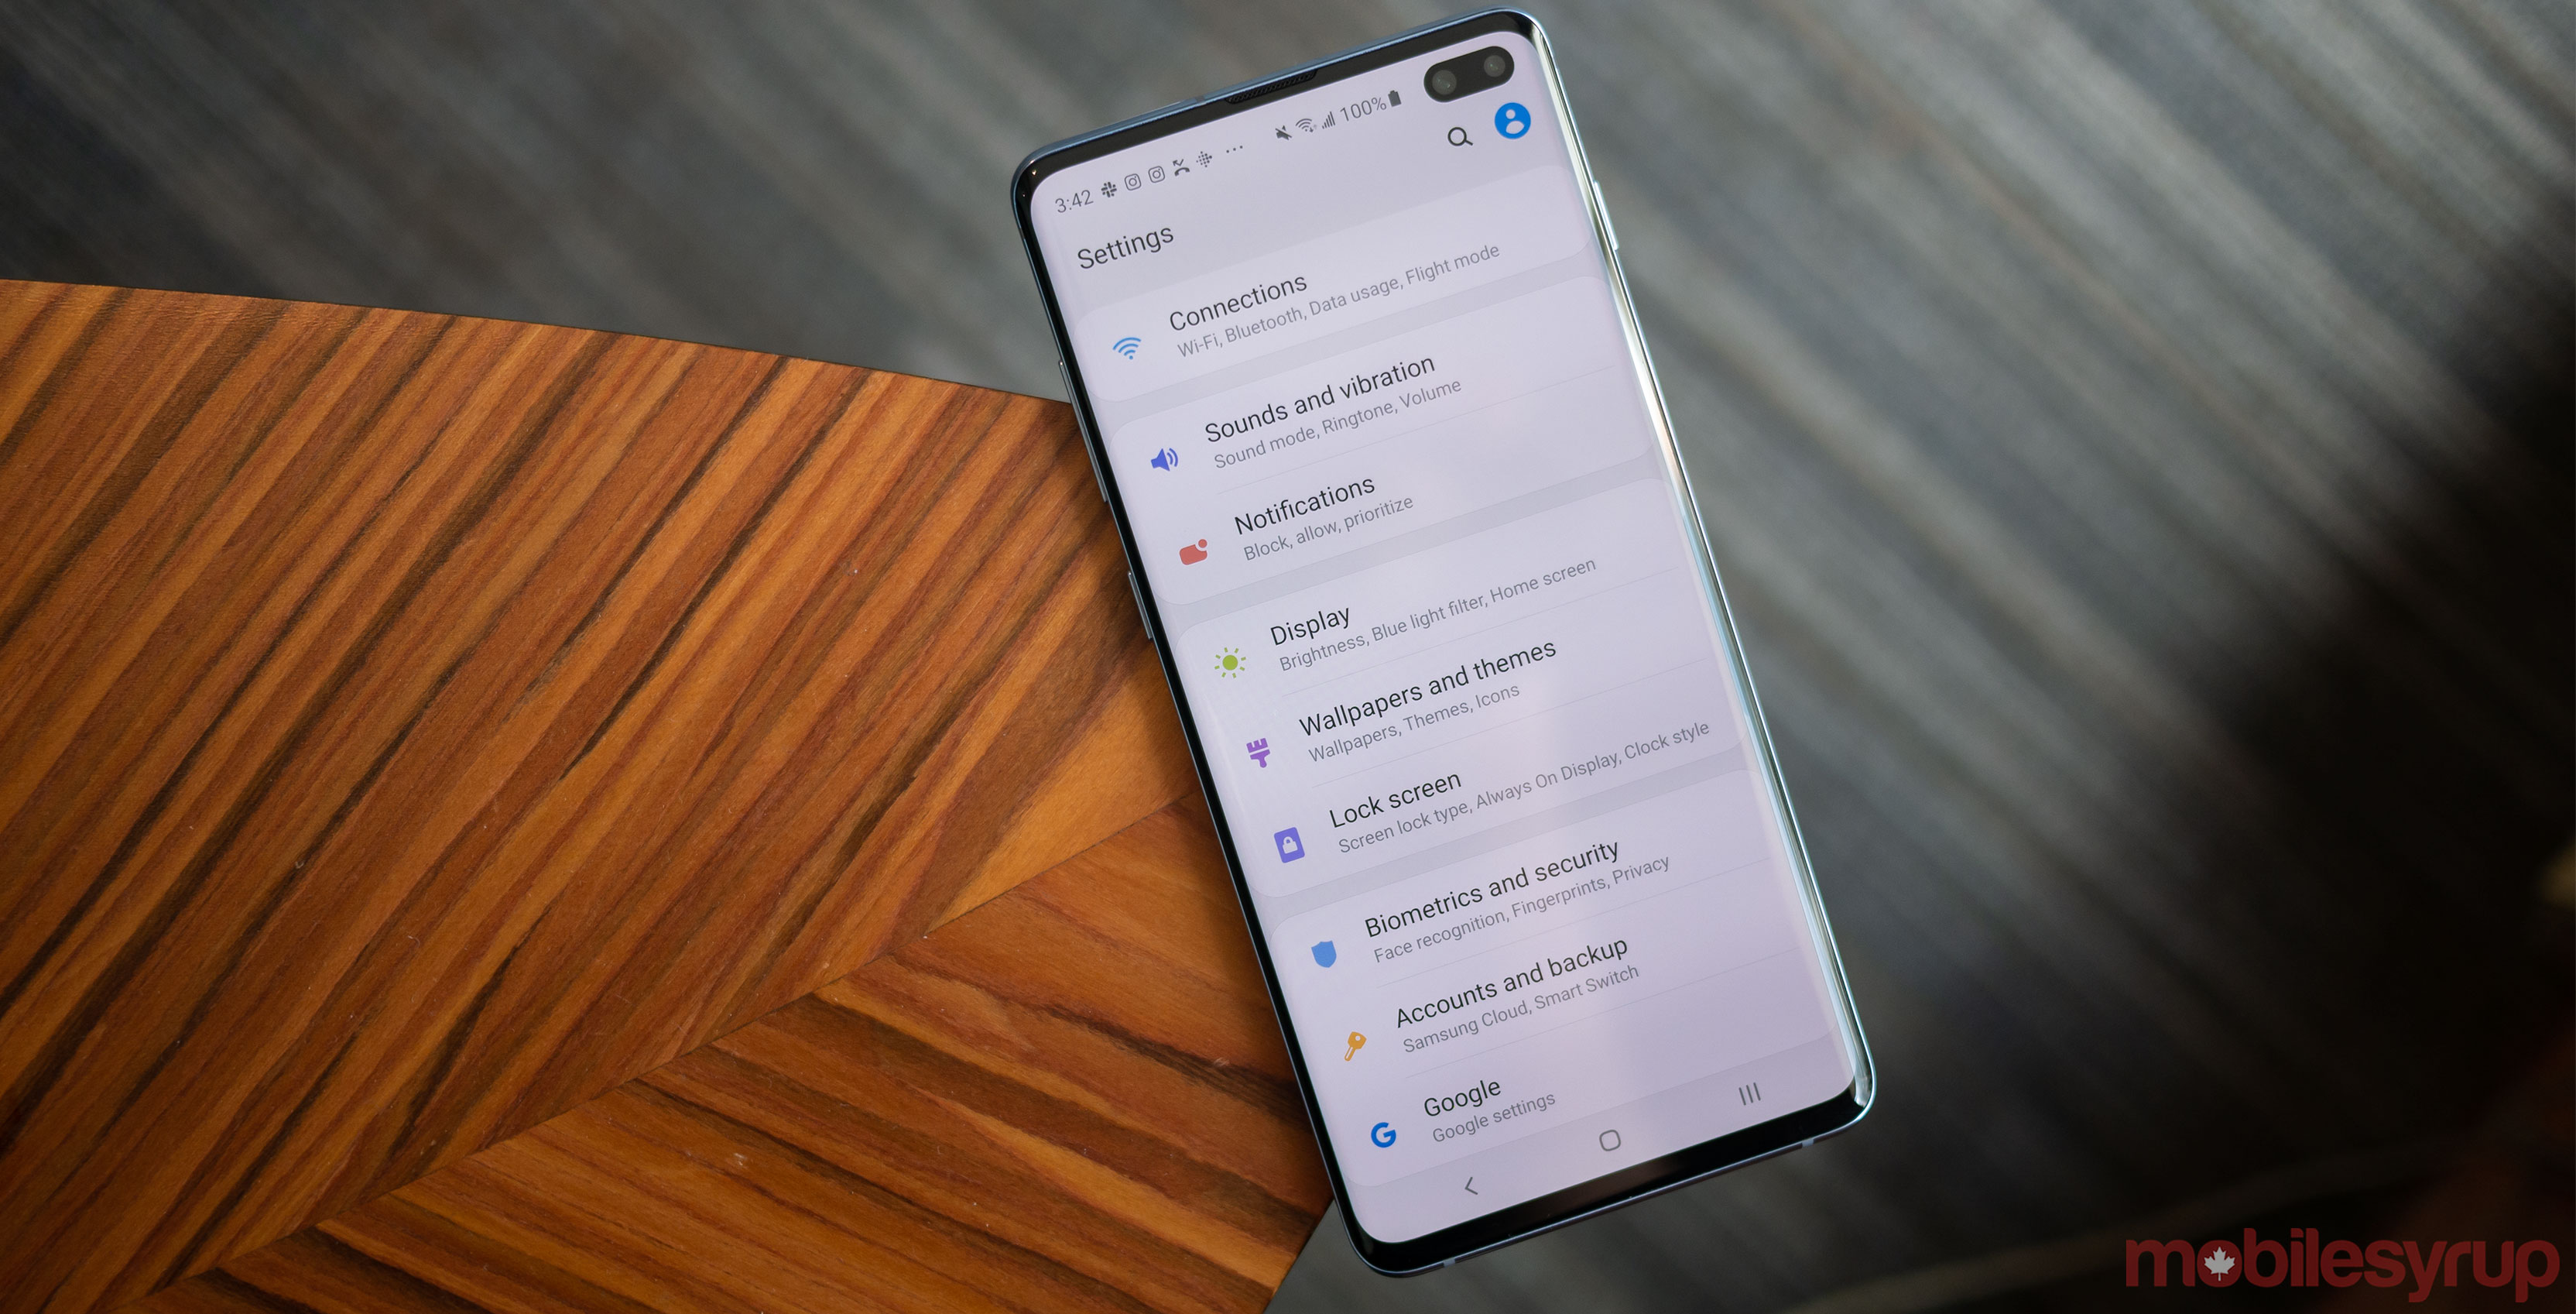 Samsung Galaxy S10 settings